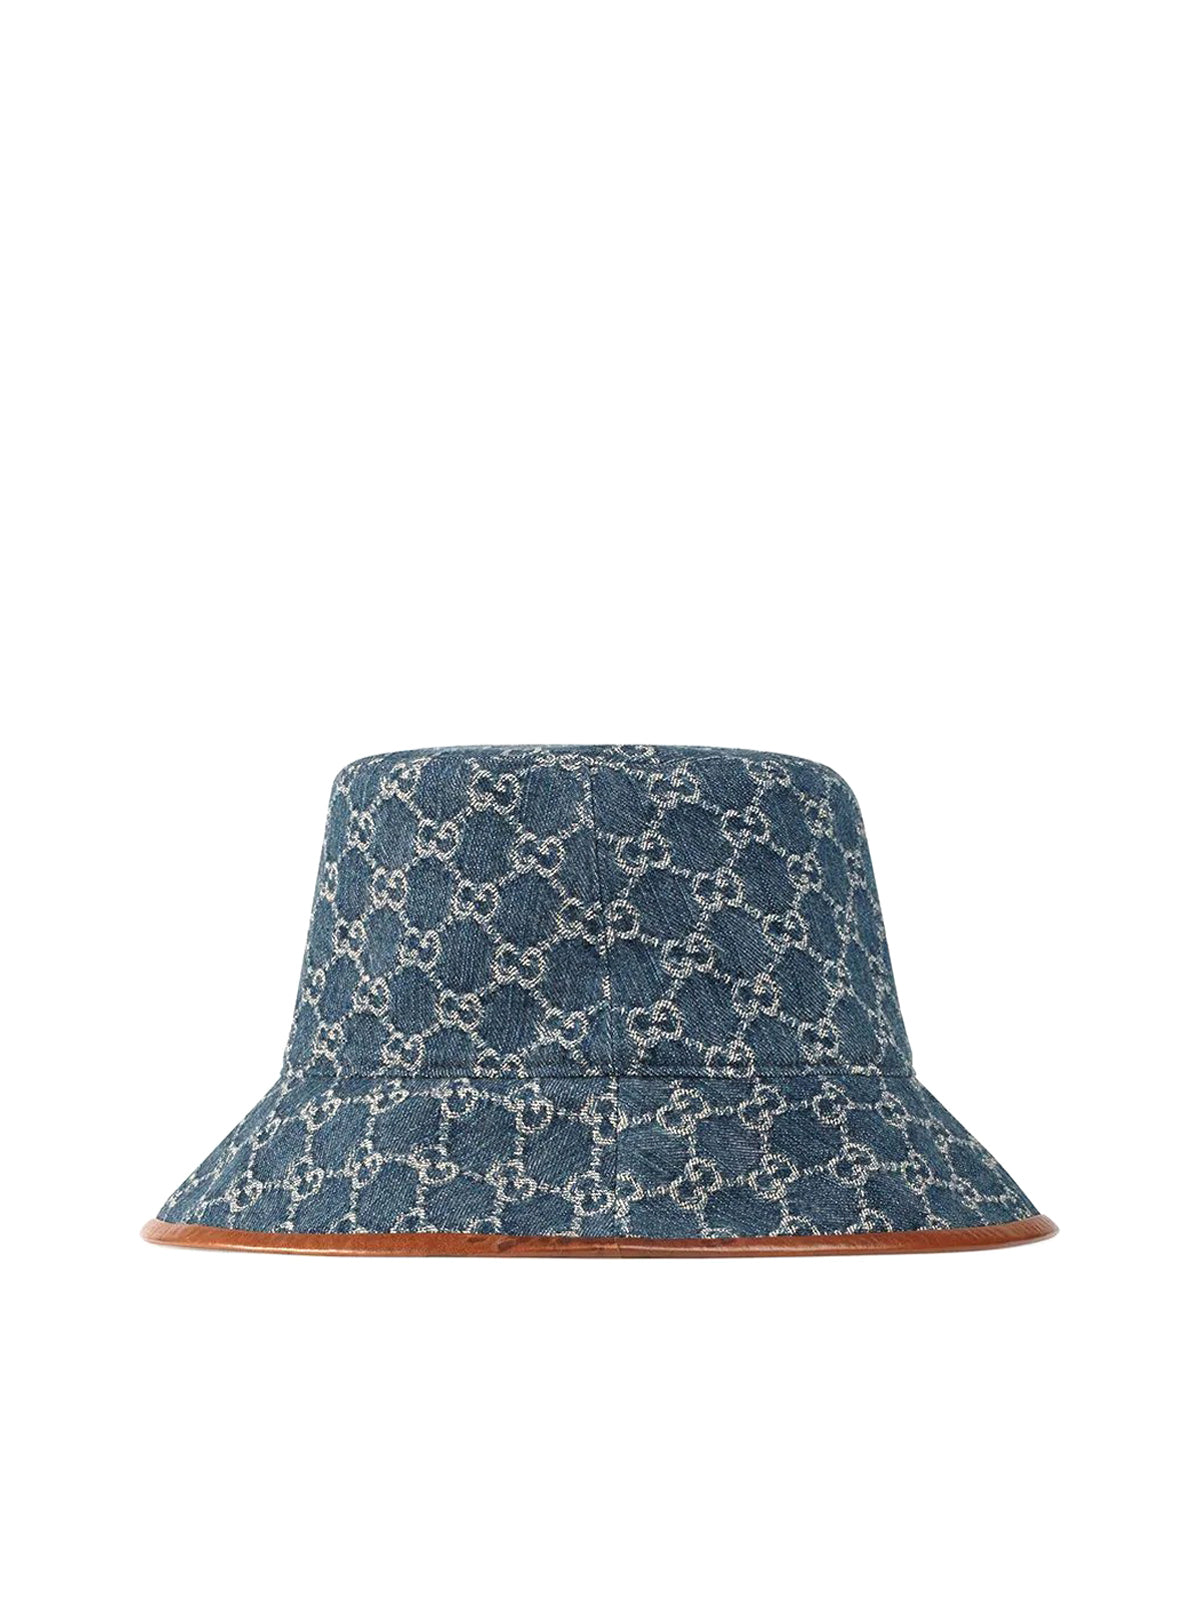 GG Supreme leather-trimmed bucket hat